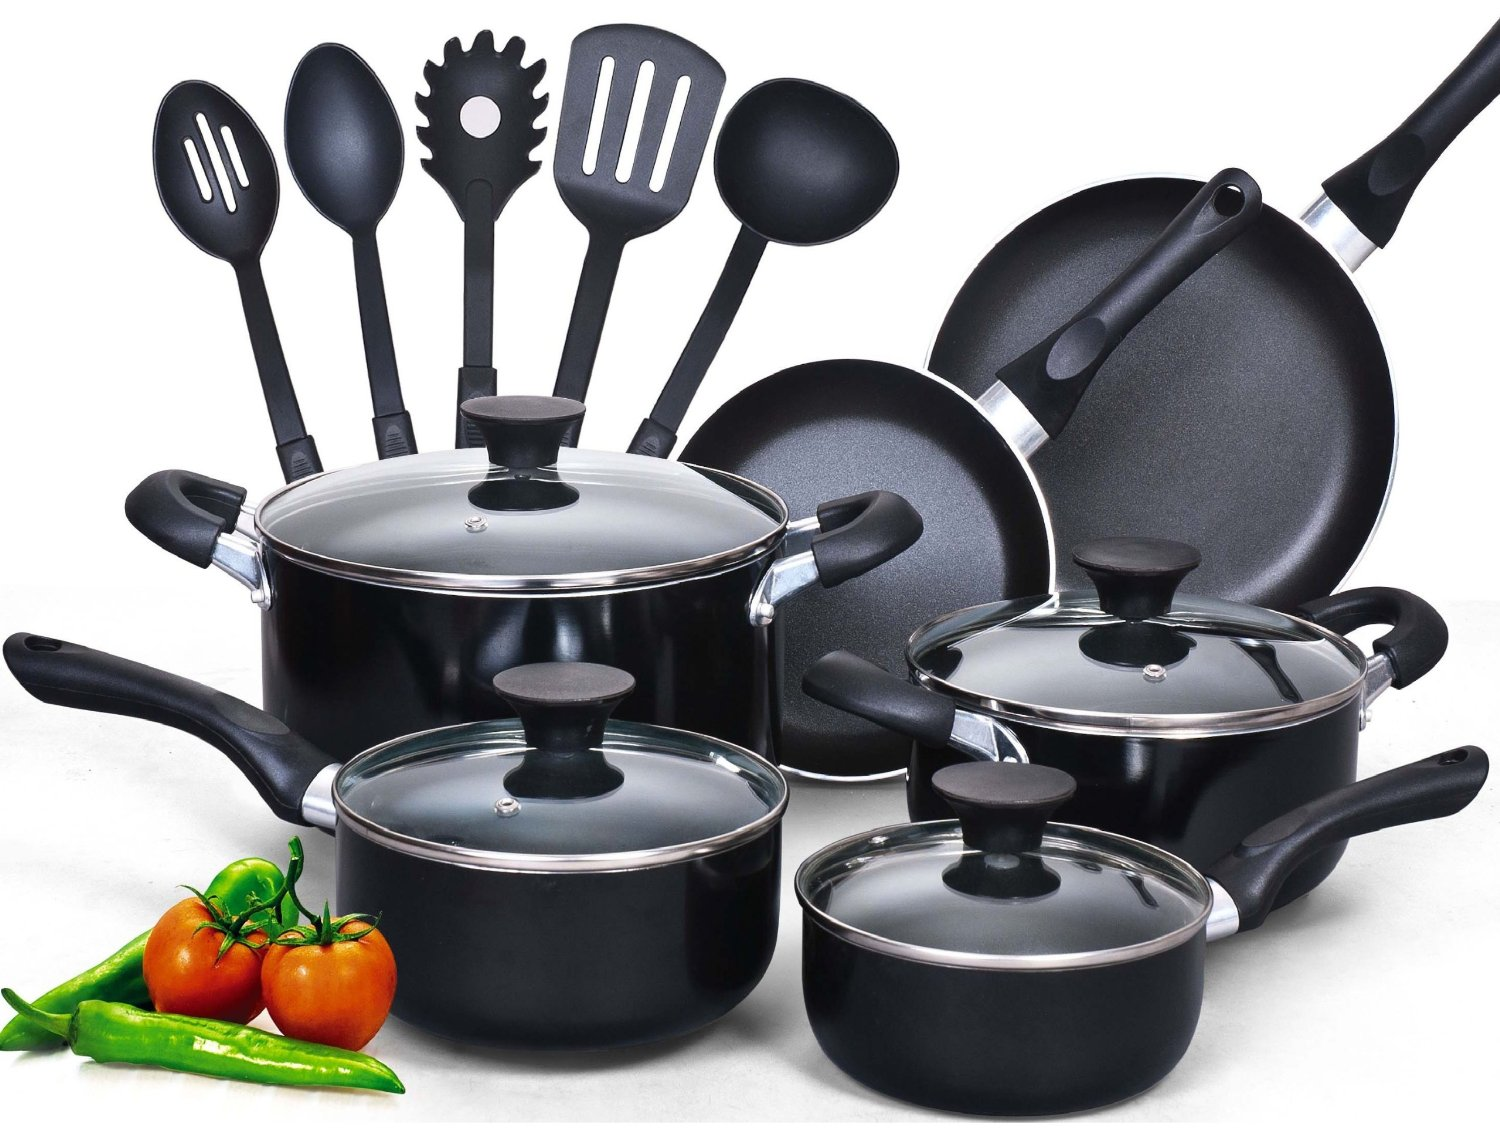 Cook-N-Home-15-Piece-Non-stick-Black-Soft-handle-Cookware-Set.jpg